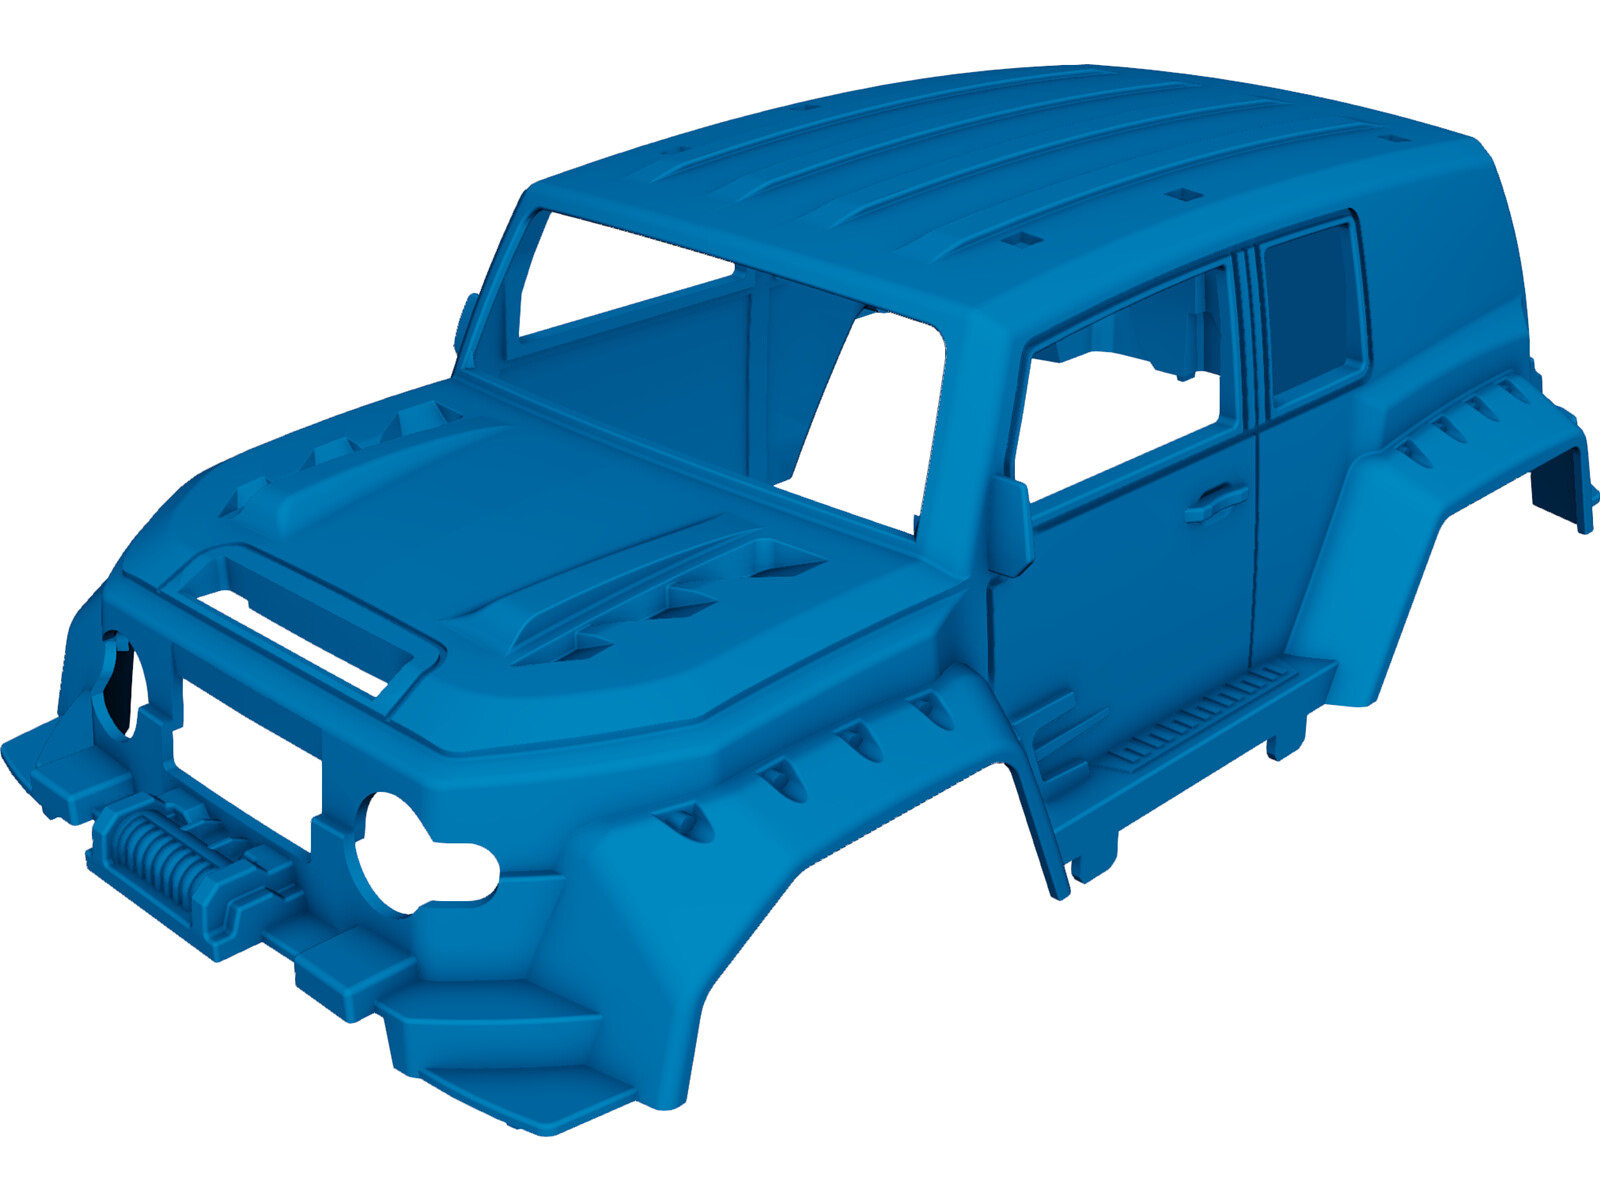 Toyota FJ Cruiser Body 3D Model